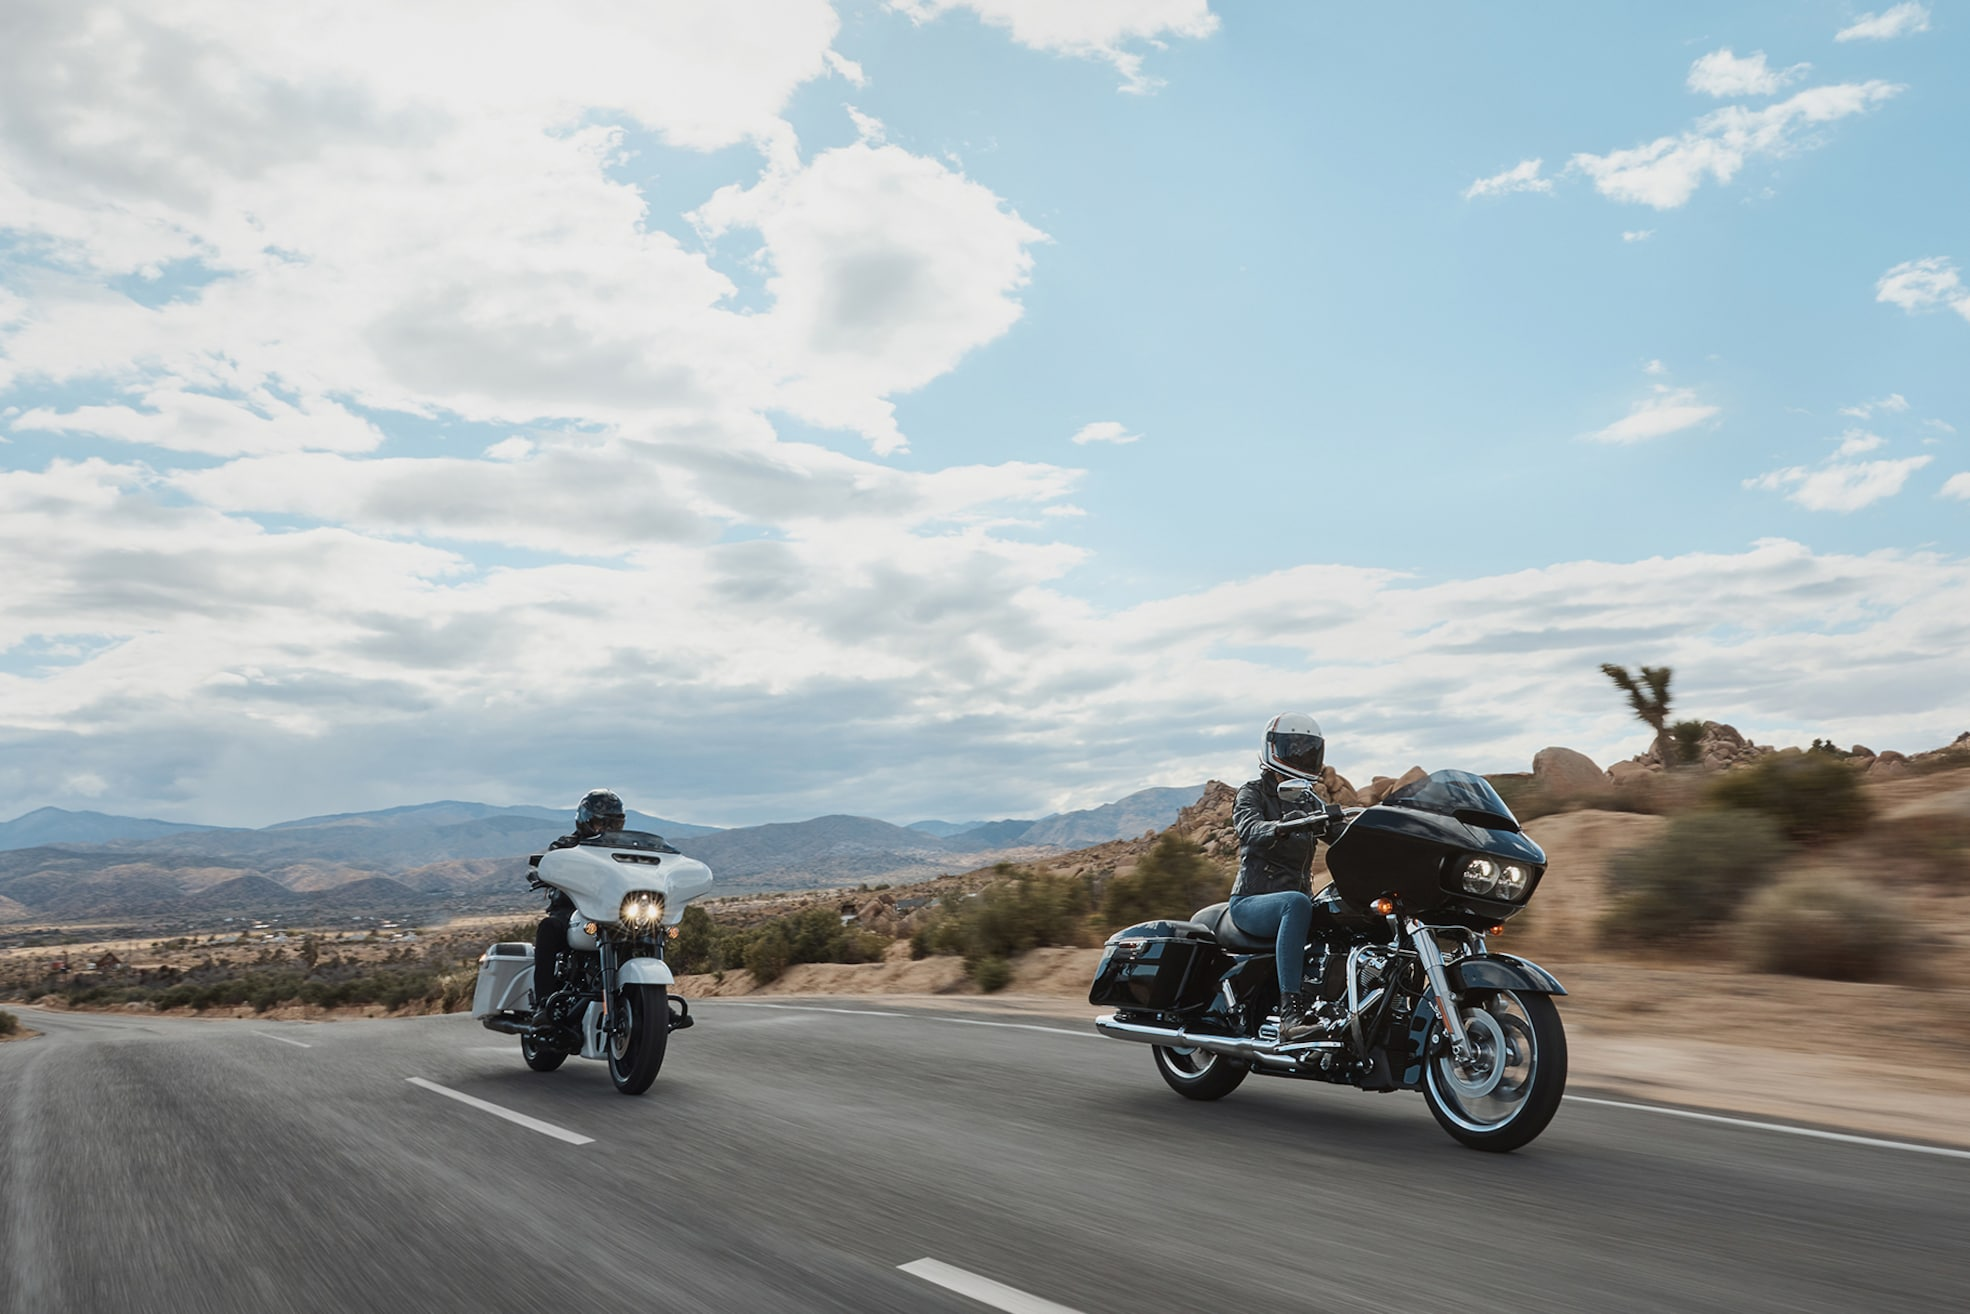 Person riding Harley-Davidson 2020 Road Glide motorcycle